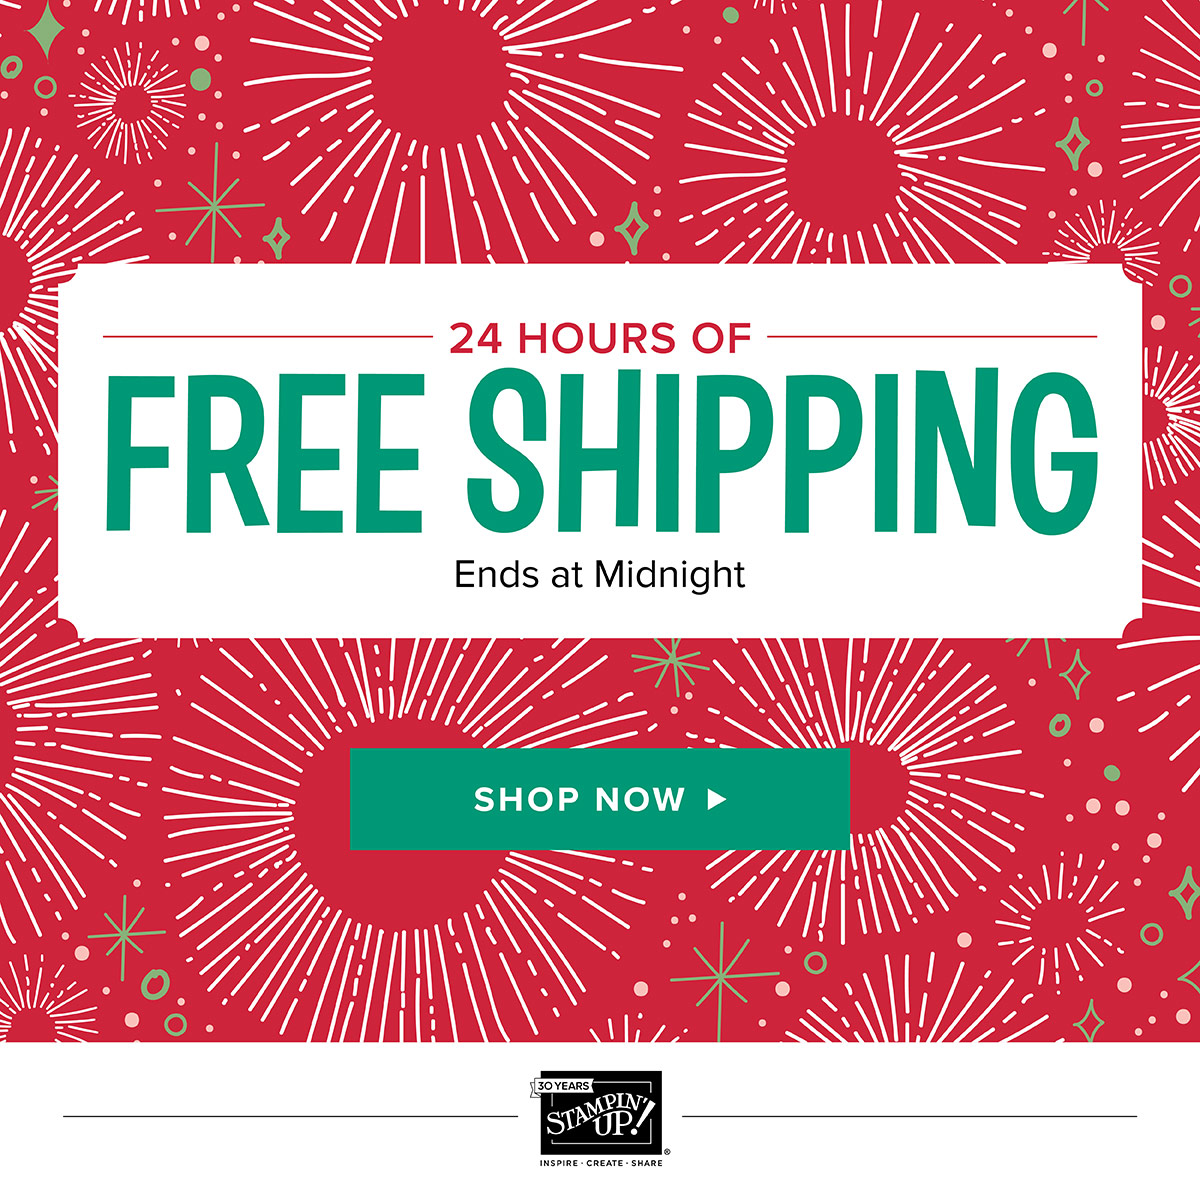 FREE SHIPPING Day – Monday, 12/11/17!